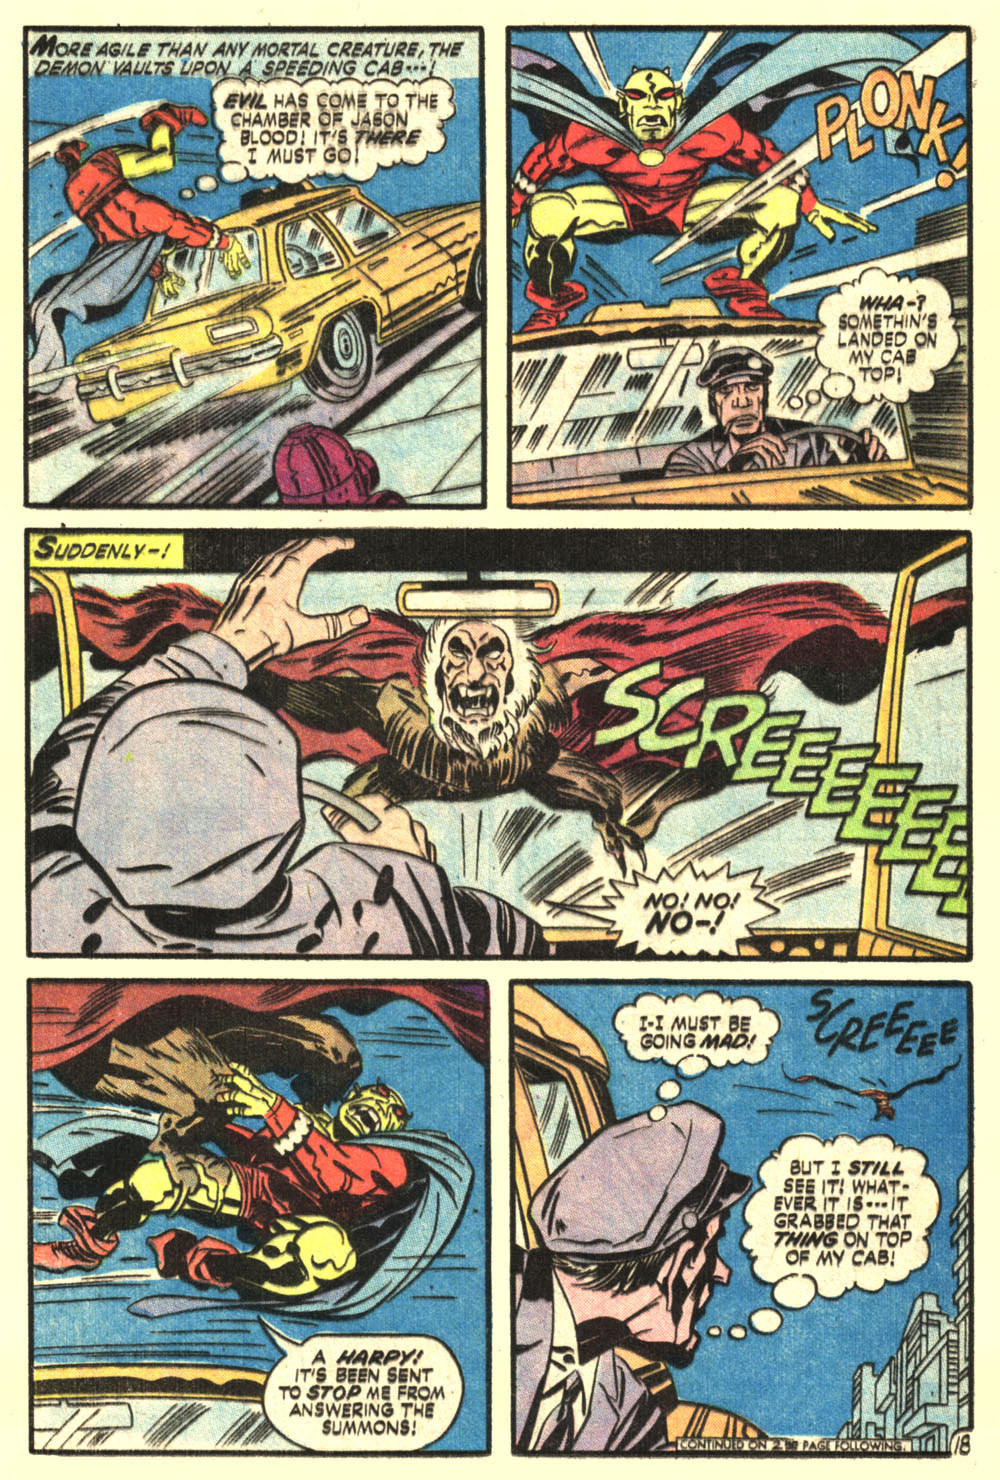 Jack Kirby writes that Etrigan is more agile than any mortal creature